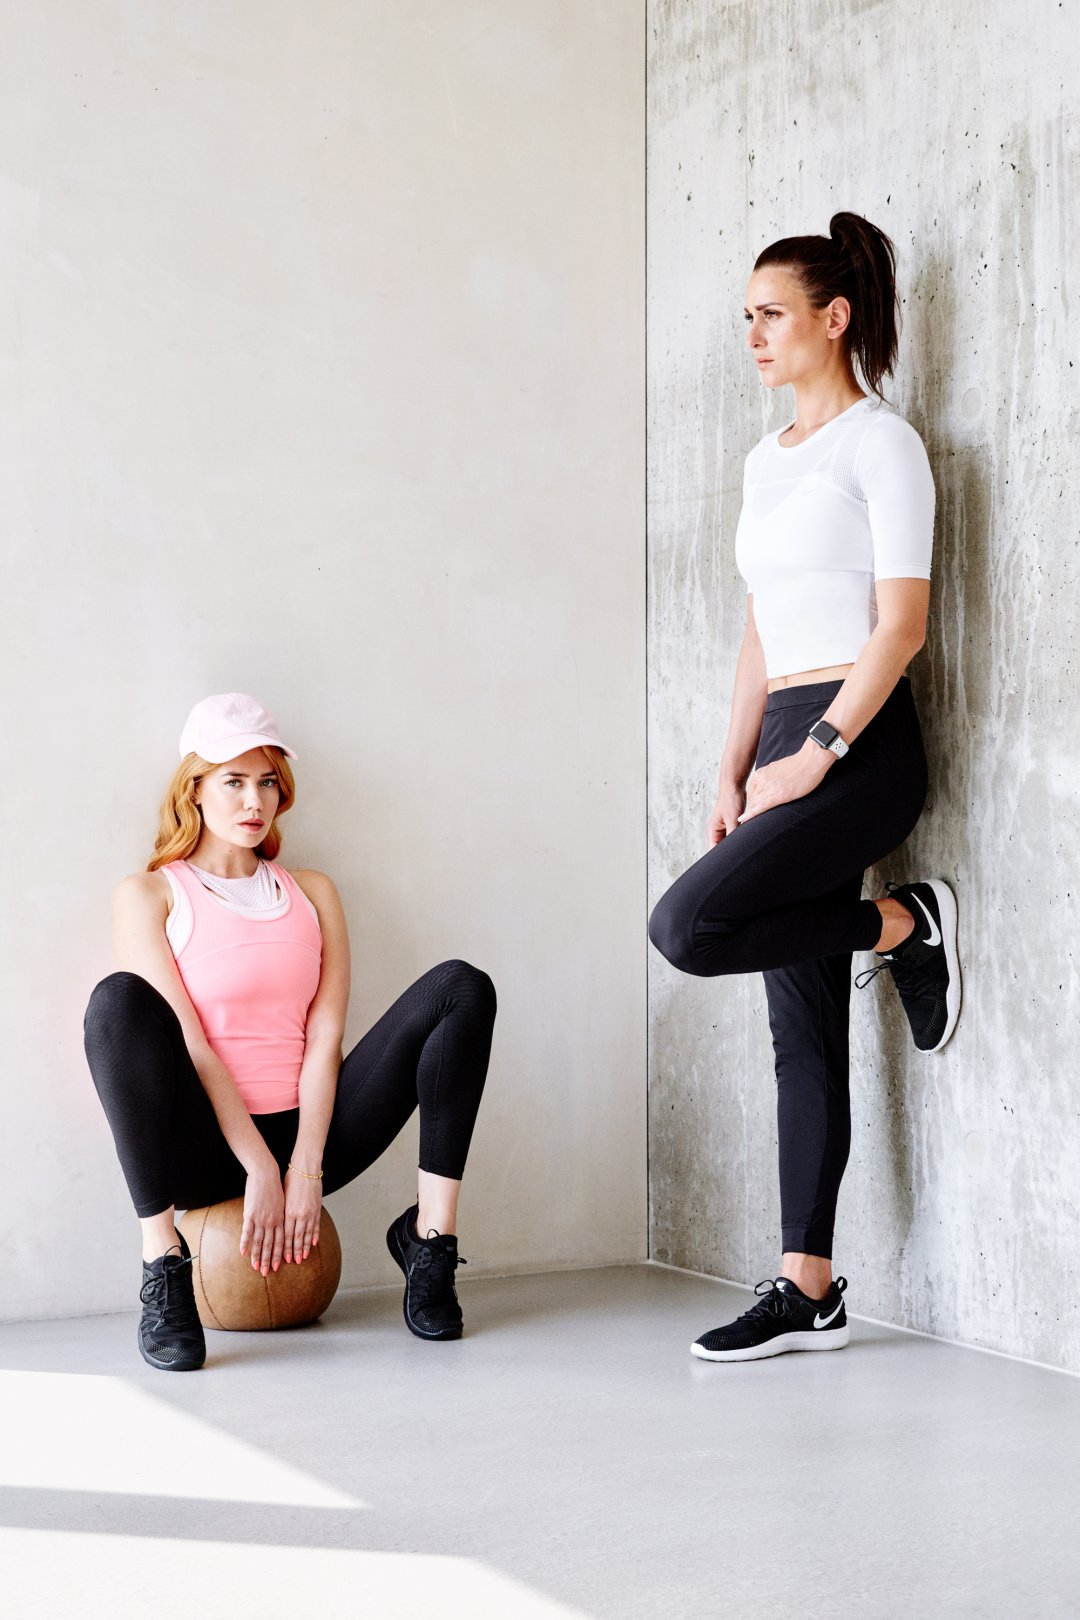 Shop Nike SB Cap, Nike Pro Hypercool Tank, Nike Pro Hypercool Tank, Nike Pro Classic Swoosh Bra, Nike Zonal Strength Tights, Nike Free TR7 Training Shoe, Nike Pro Hypercool Top, Nike Pro Indy Bra, Nike Flex Training Trousers, Nike Free TR7 Training Shoe and more